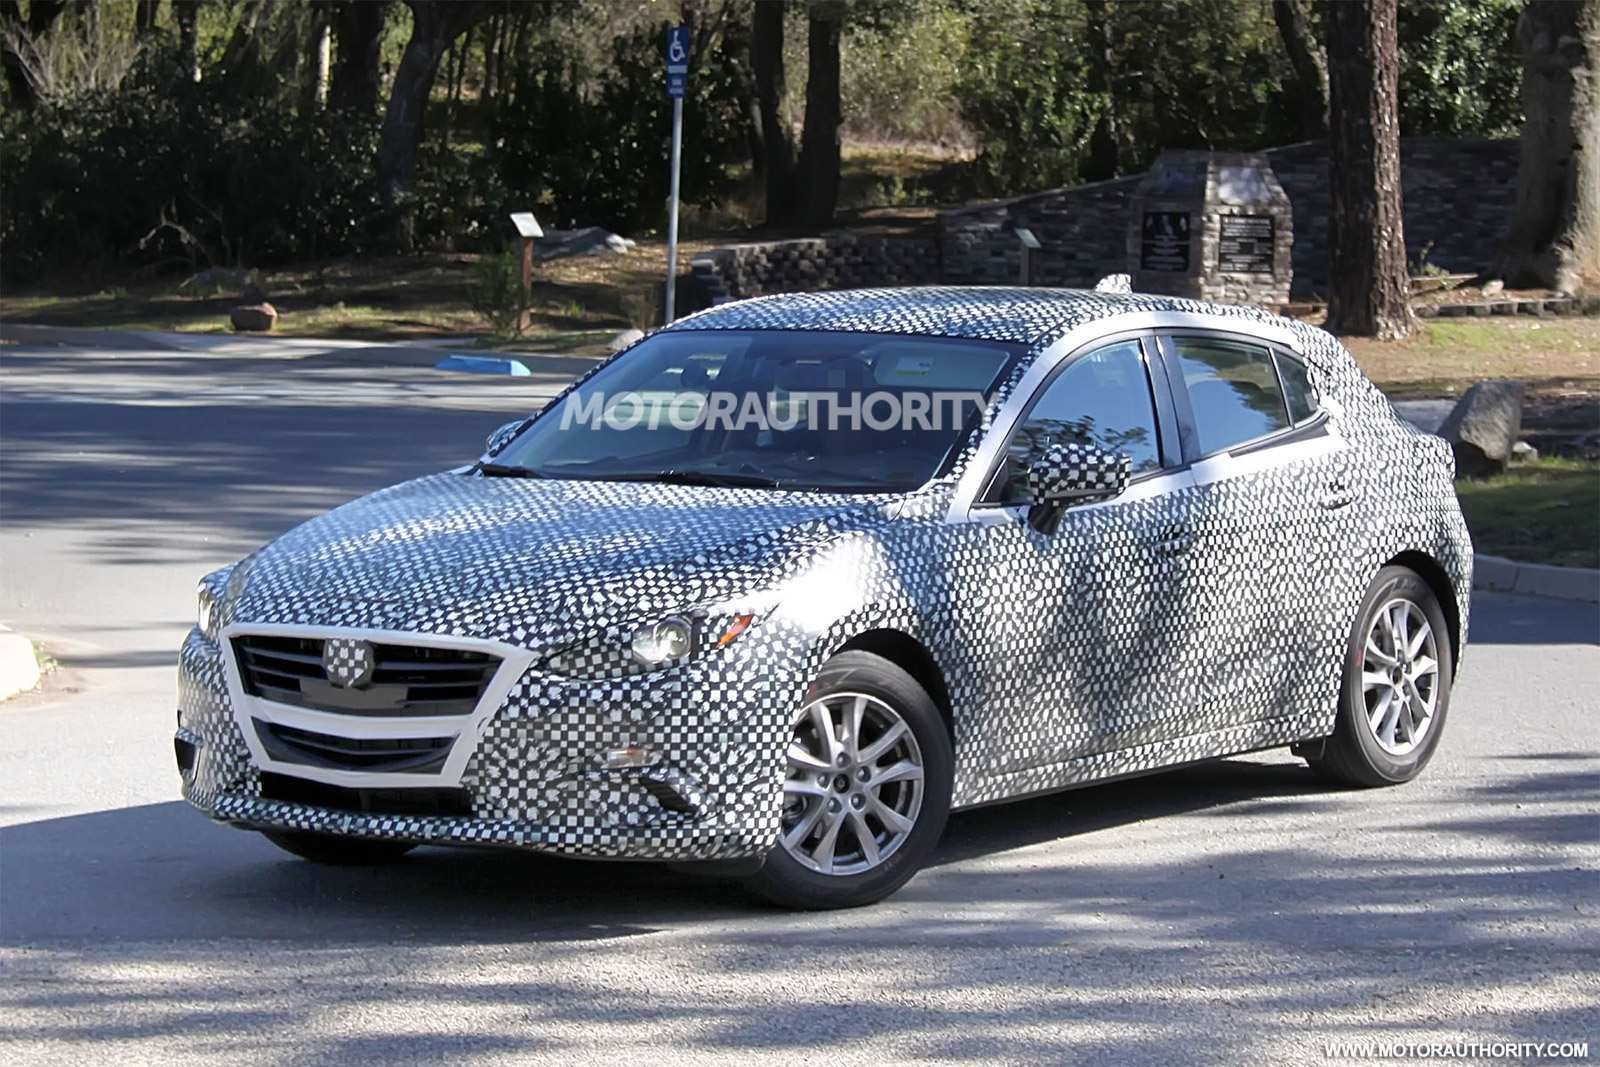 21 All New 2020 Mazda 3 Spy Shots Concept by 2020 Mazda 3 Spy Shots